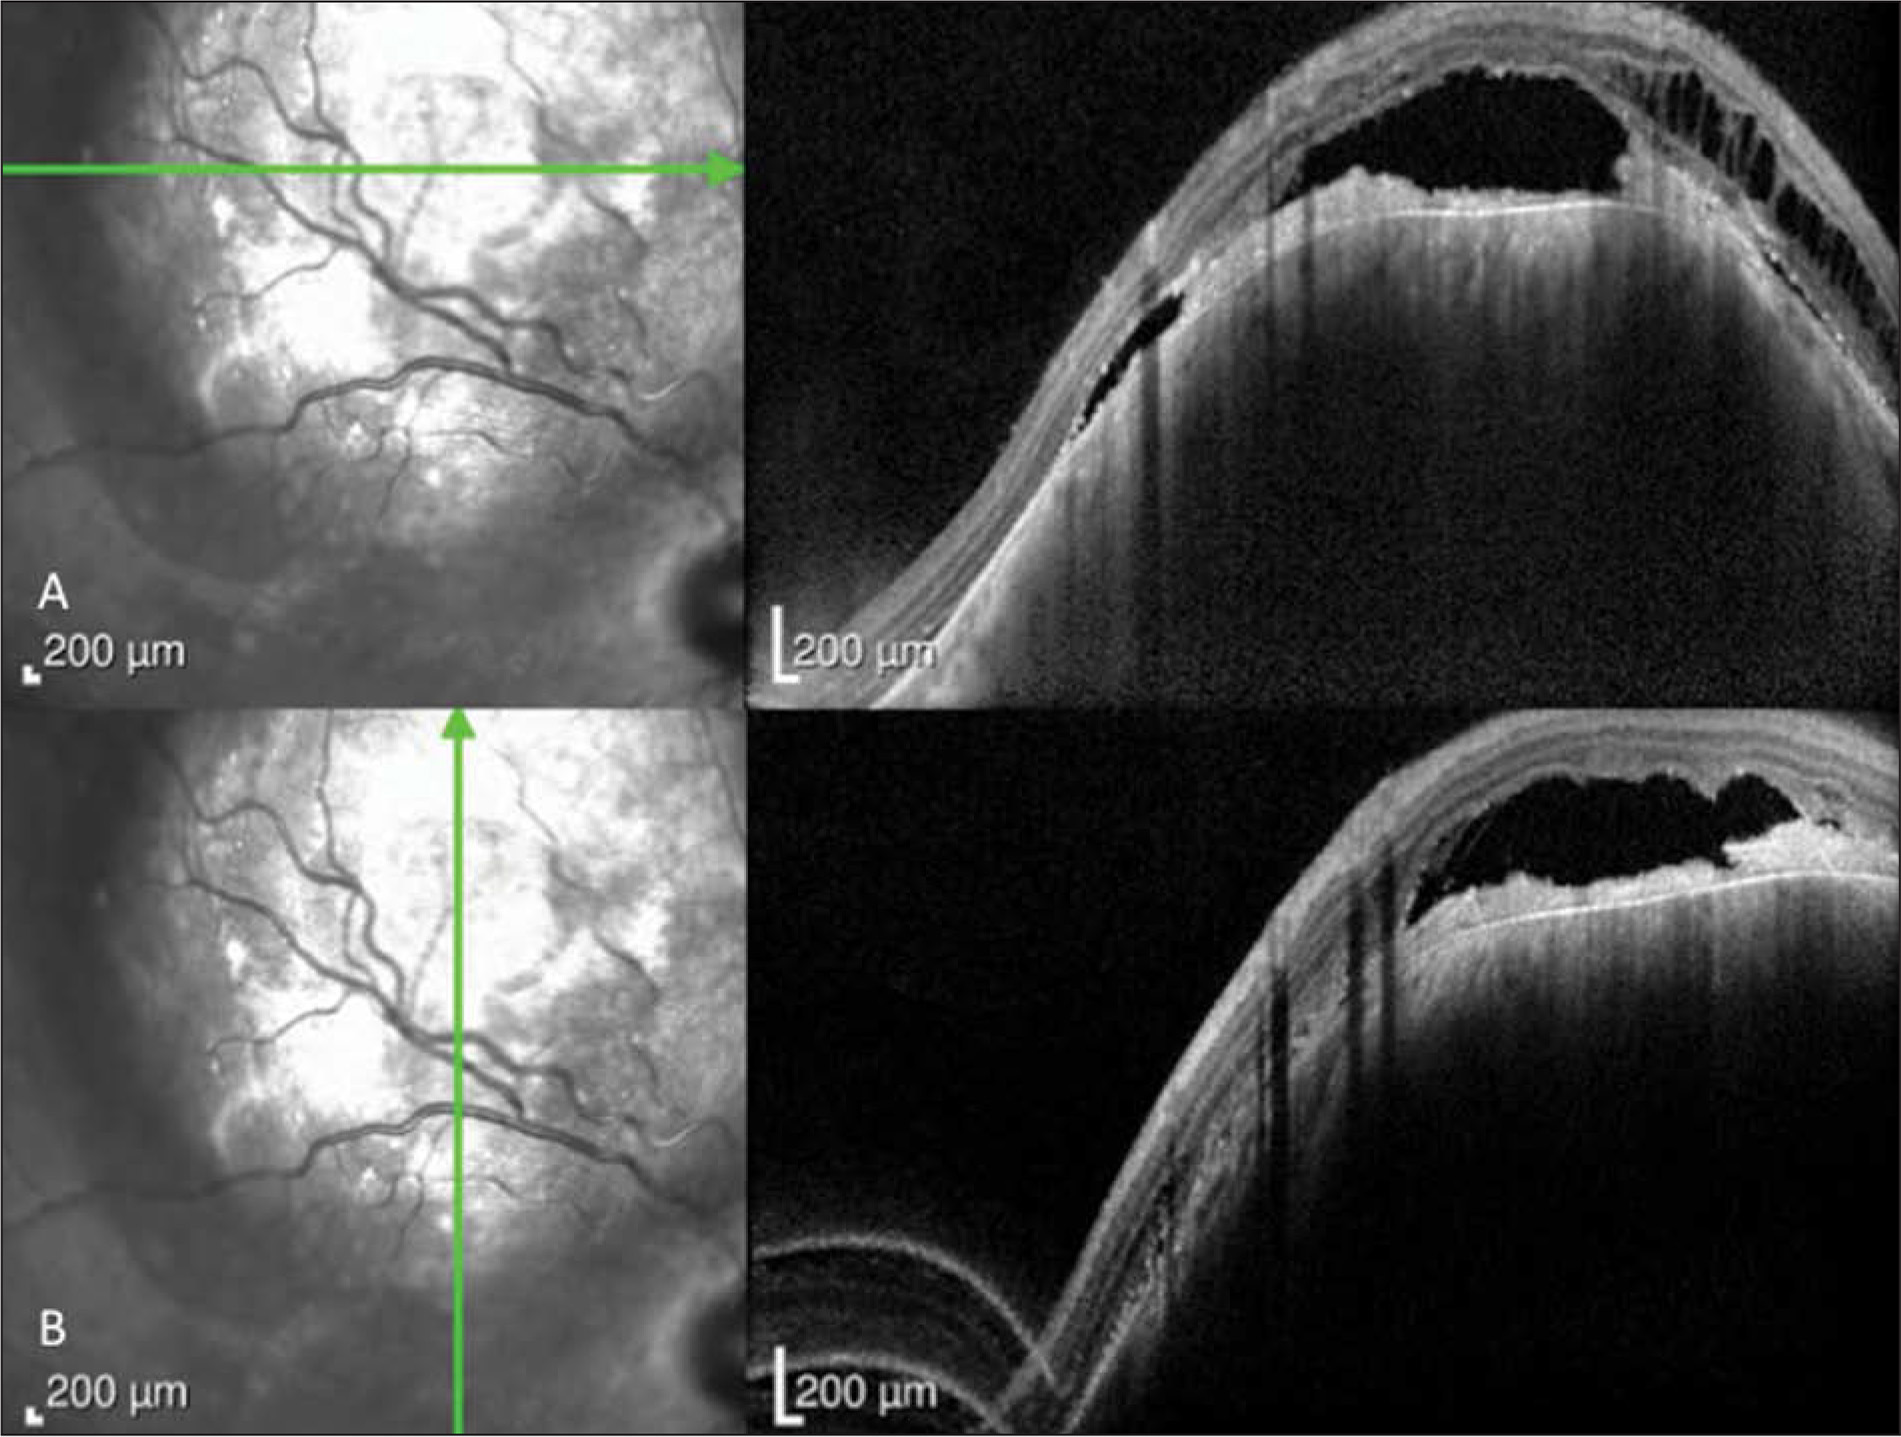 Optical coherence tomography images of choroidal melanoma. (A) Horizontal and (B) vertical imaging cuts showing the abruptly elevated choroidal mass with overlying subretinal fluid and subretinal debris with intraretinal cystoid changes.